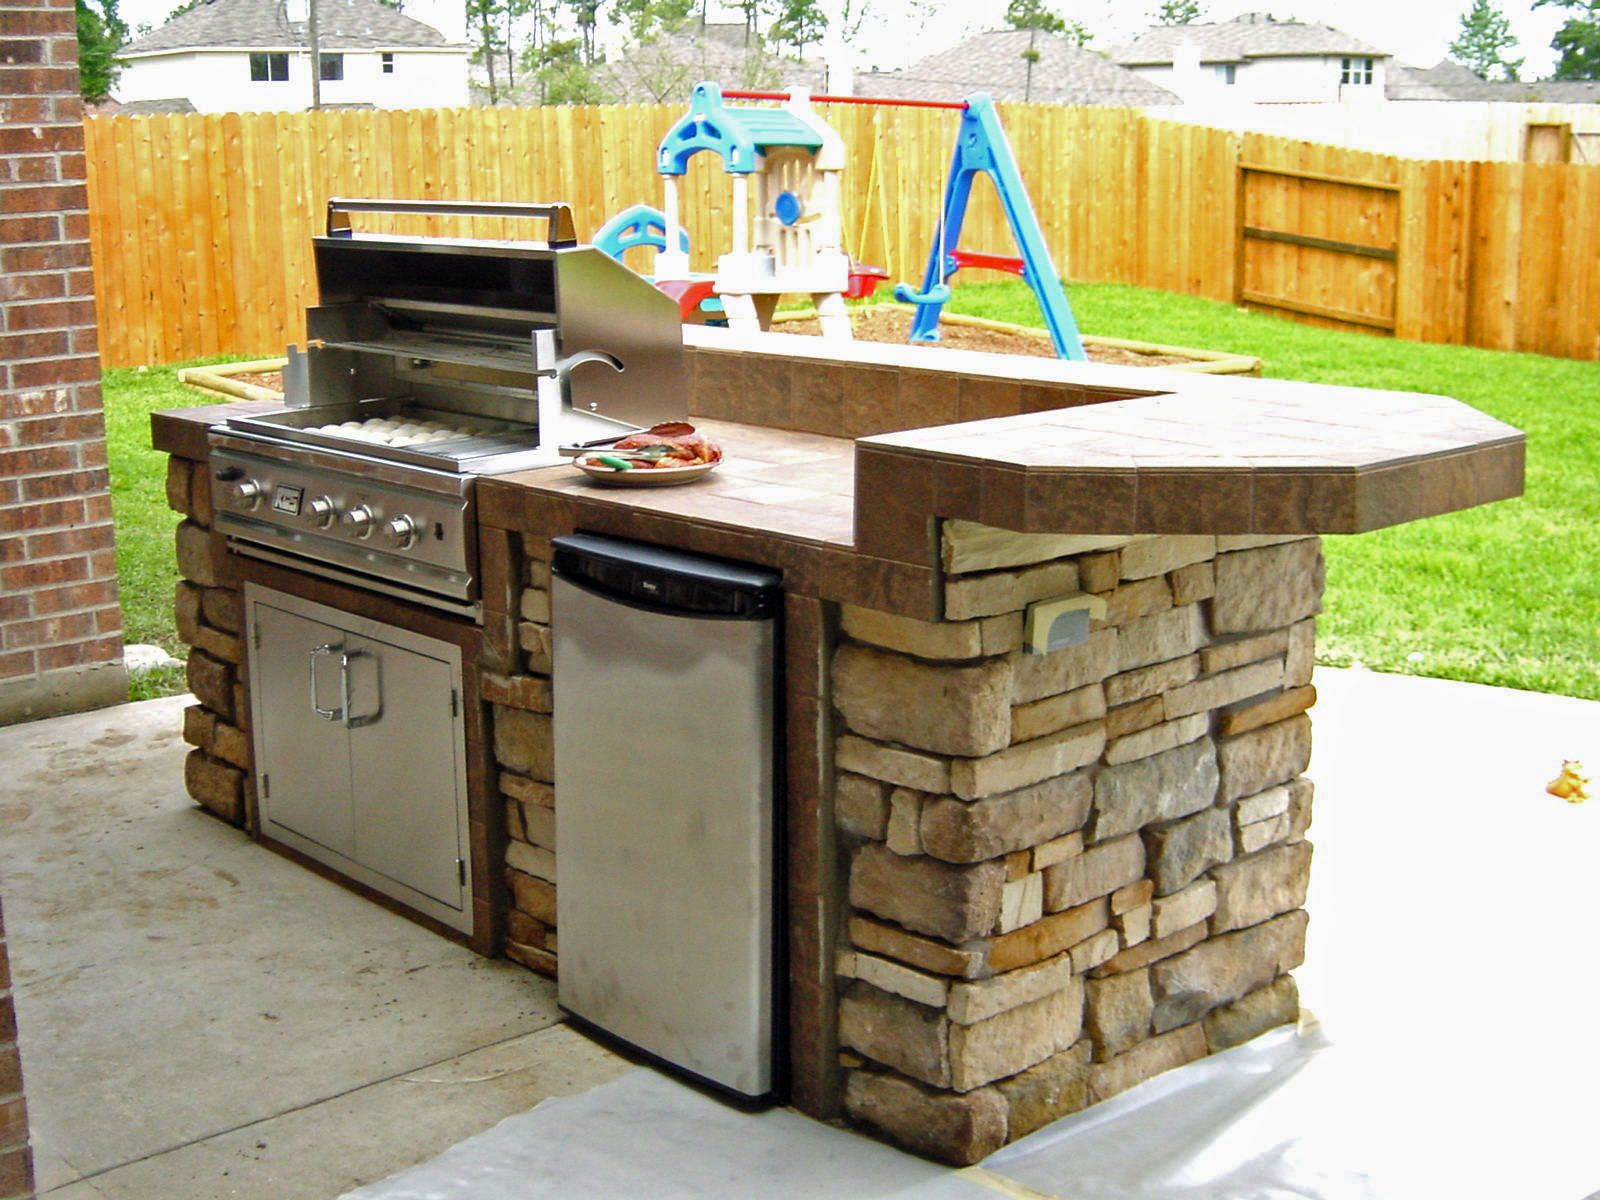 Outdoor Kitchen Ideas On A Budget Httpwww.outdoorhomescapessitebuildercontent .